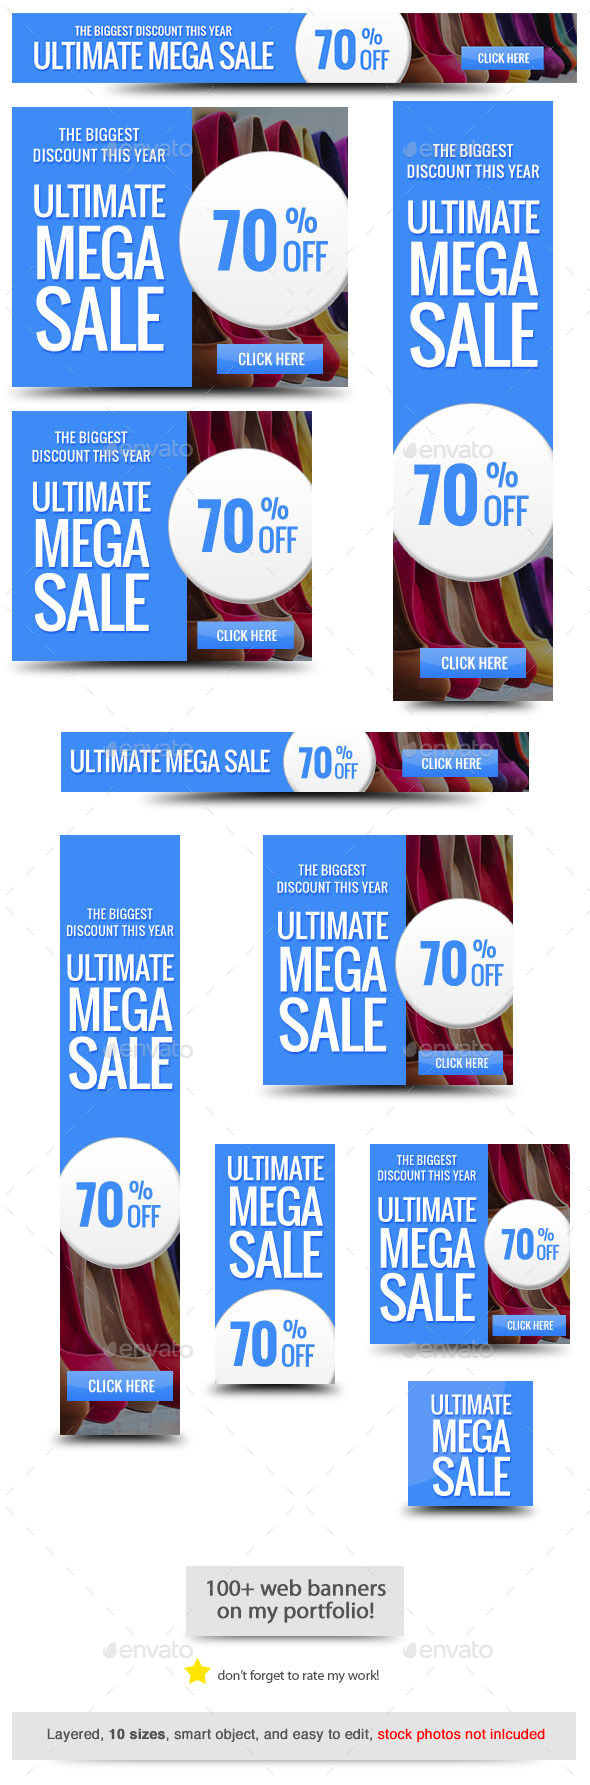 Ultimate Mega Sale